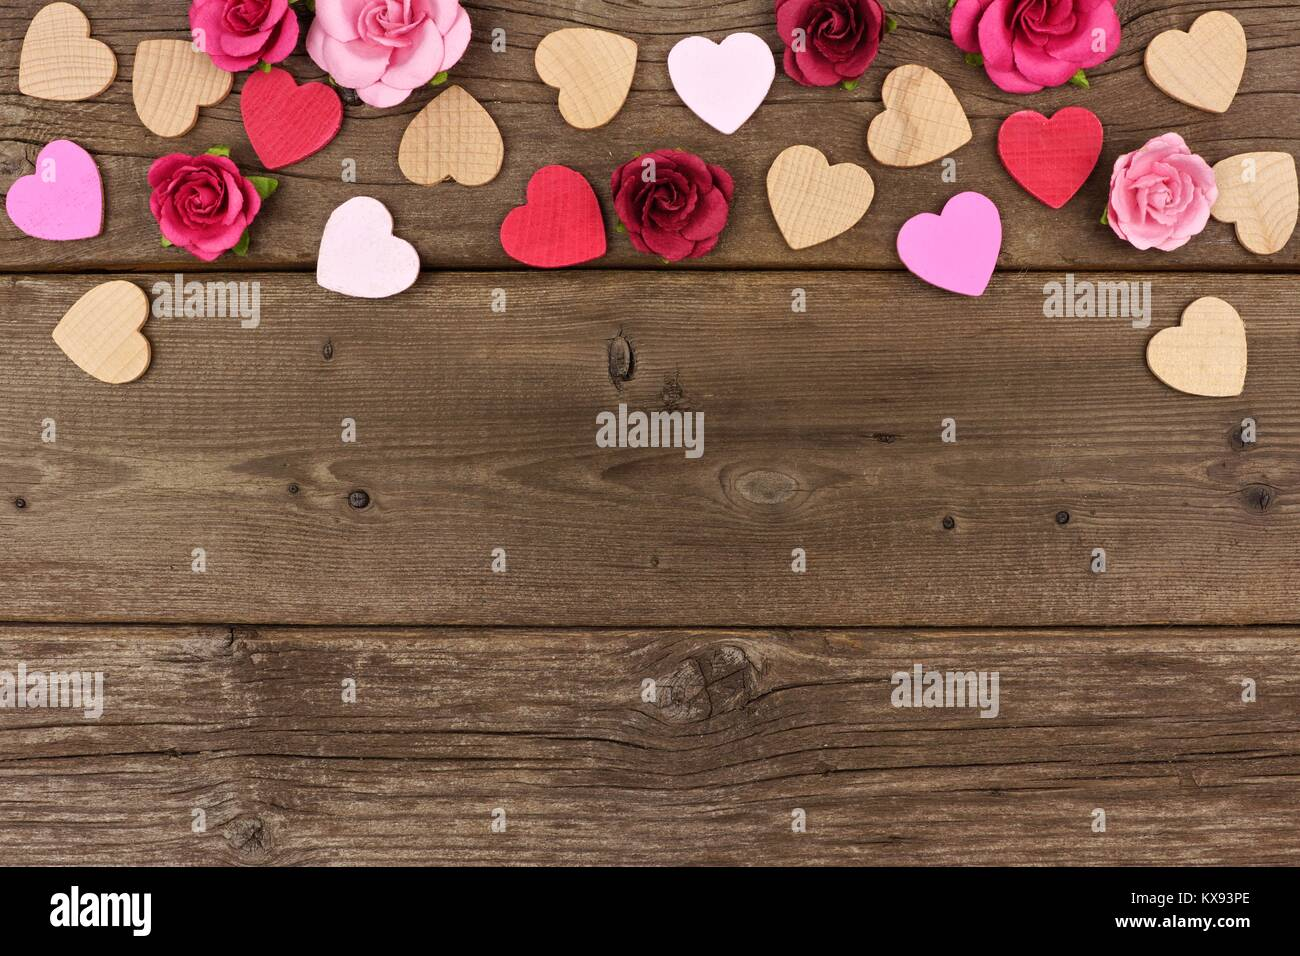 Valentines Day top border of wooden hearts and paper roses against a rustic wood background with copy space. - Stock Image